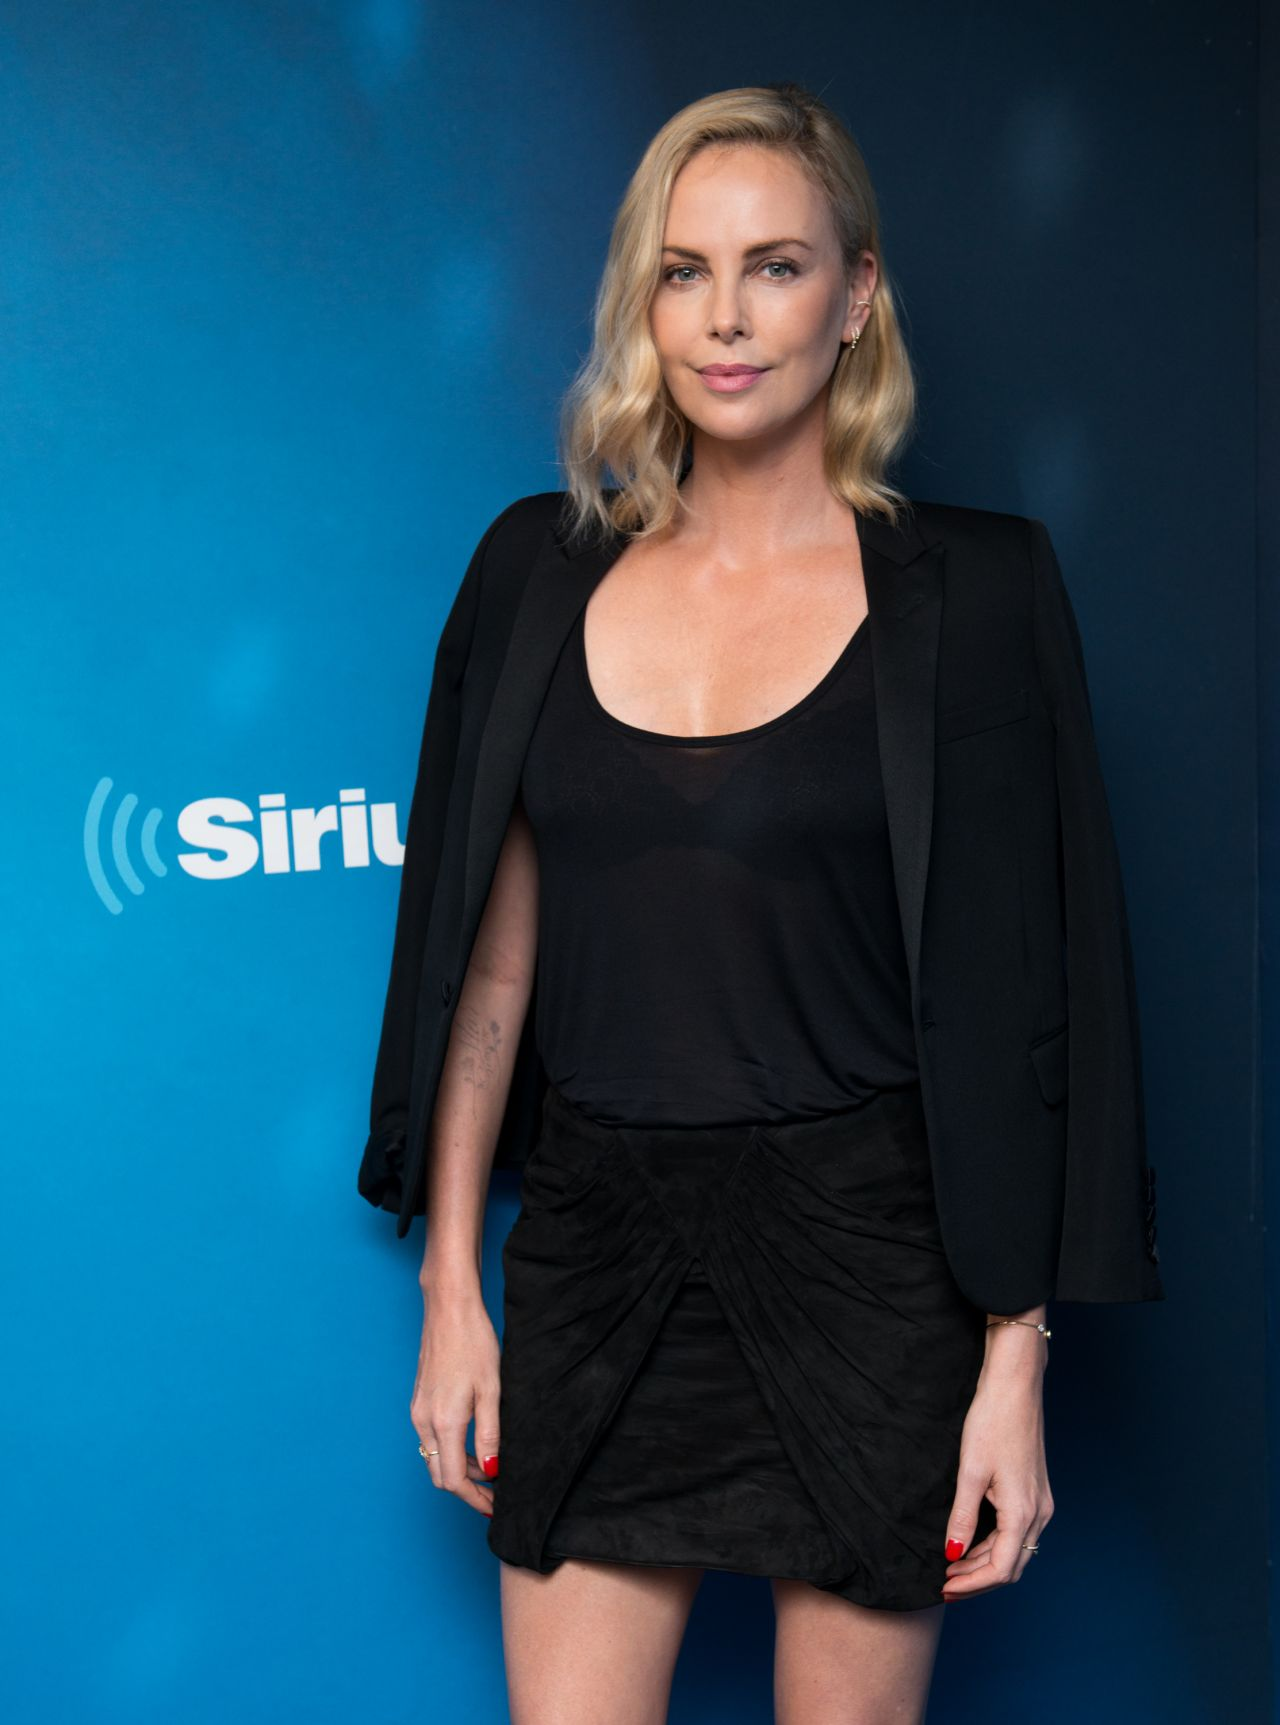 Charlize Theron - Visits SiriusXM Studios in NYC 07/19/2017 Charlize Theron